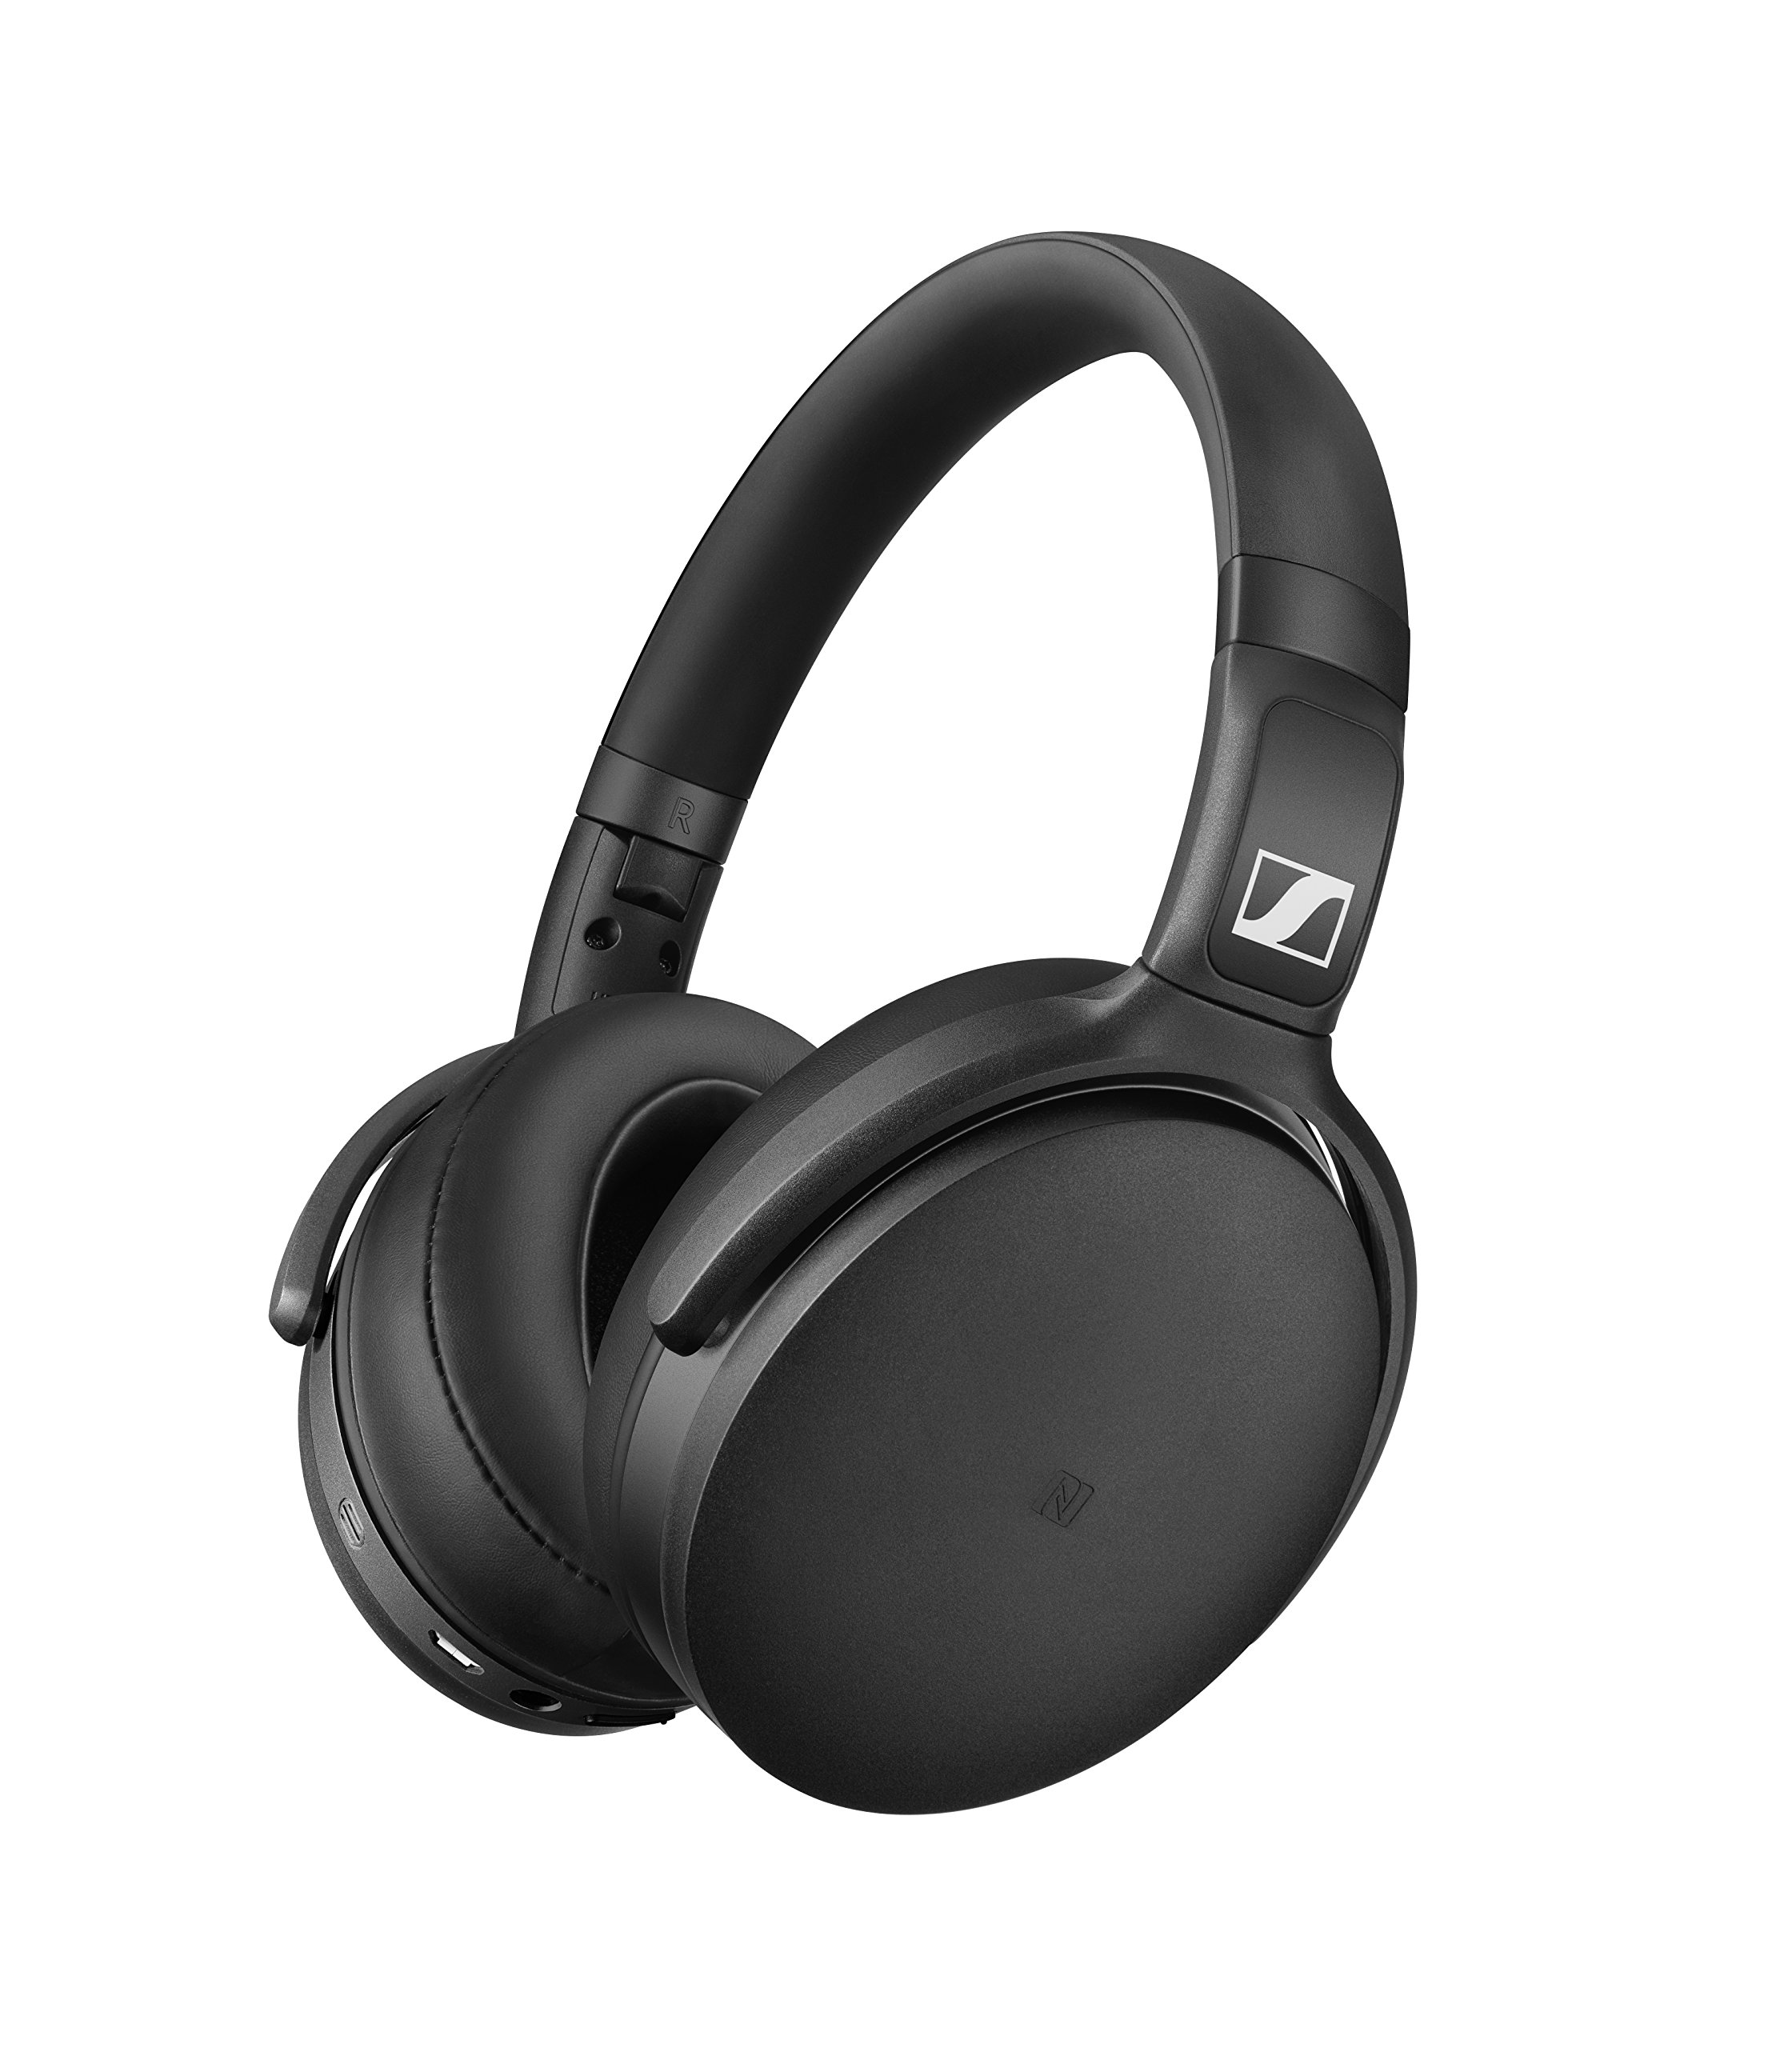 Sennheiser HD 4.50 SE Wireless Noise Cancelling Headphones - Black (Amazon Exclusive) by Sennheiser Consumer Audio